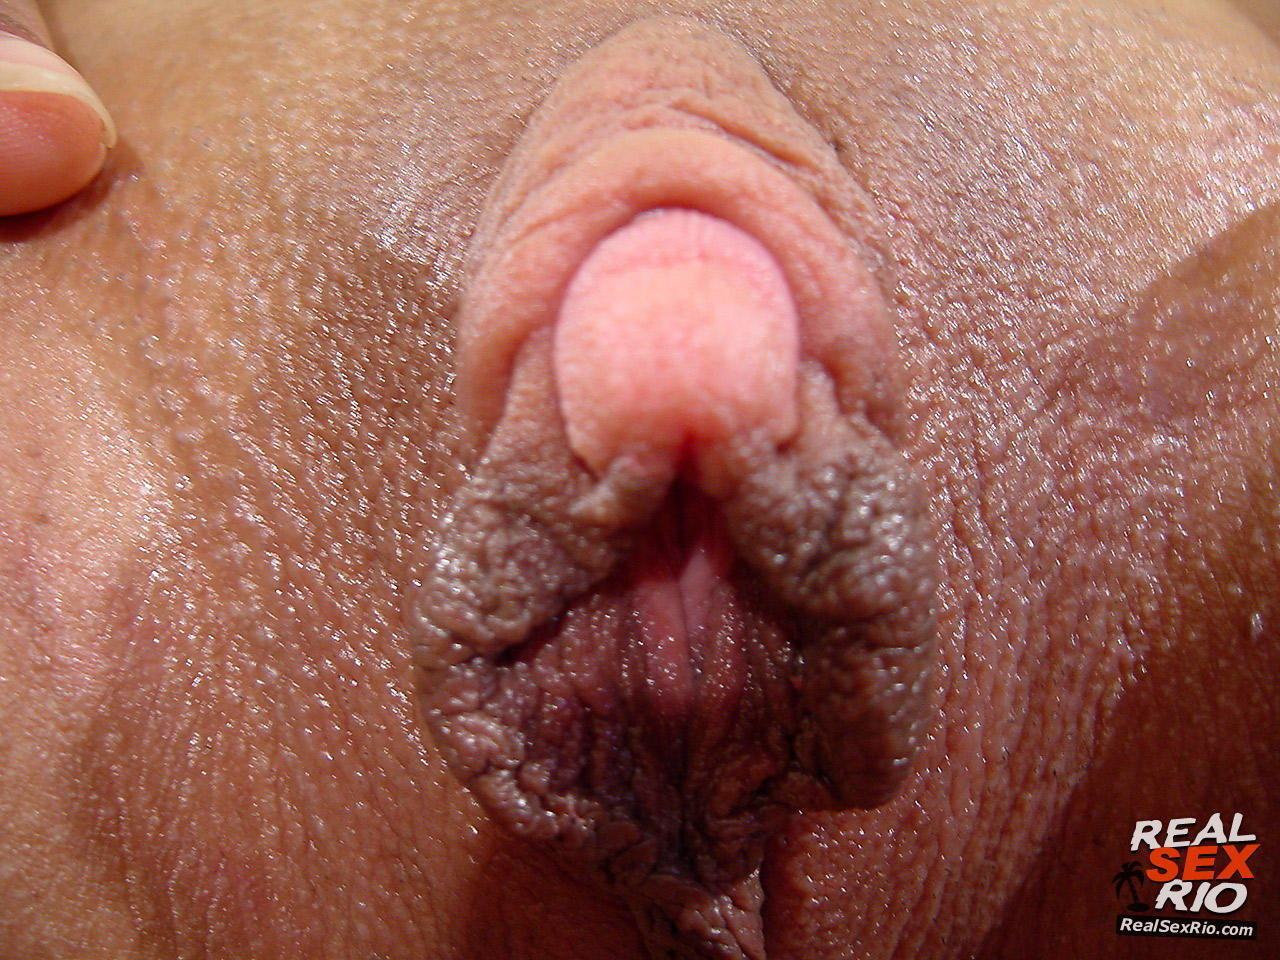 Large Clitoris Sex 46